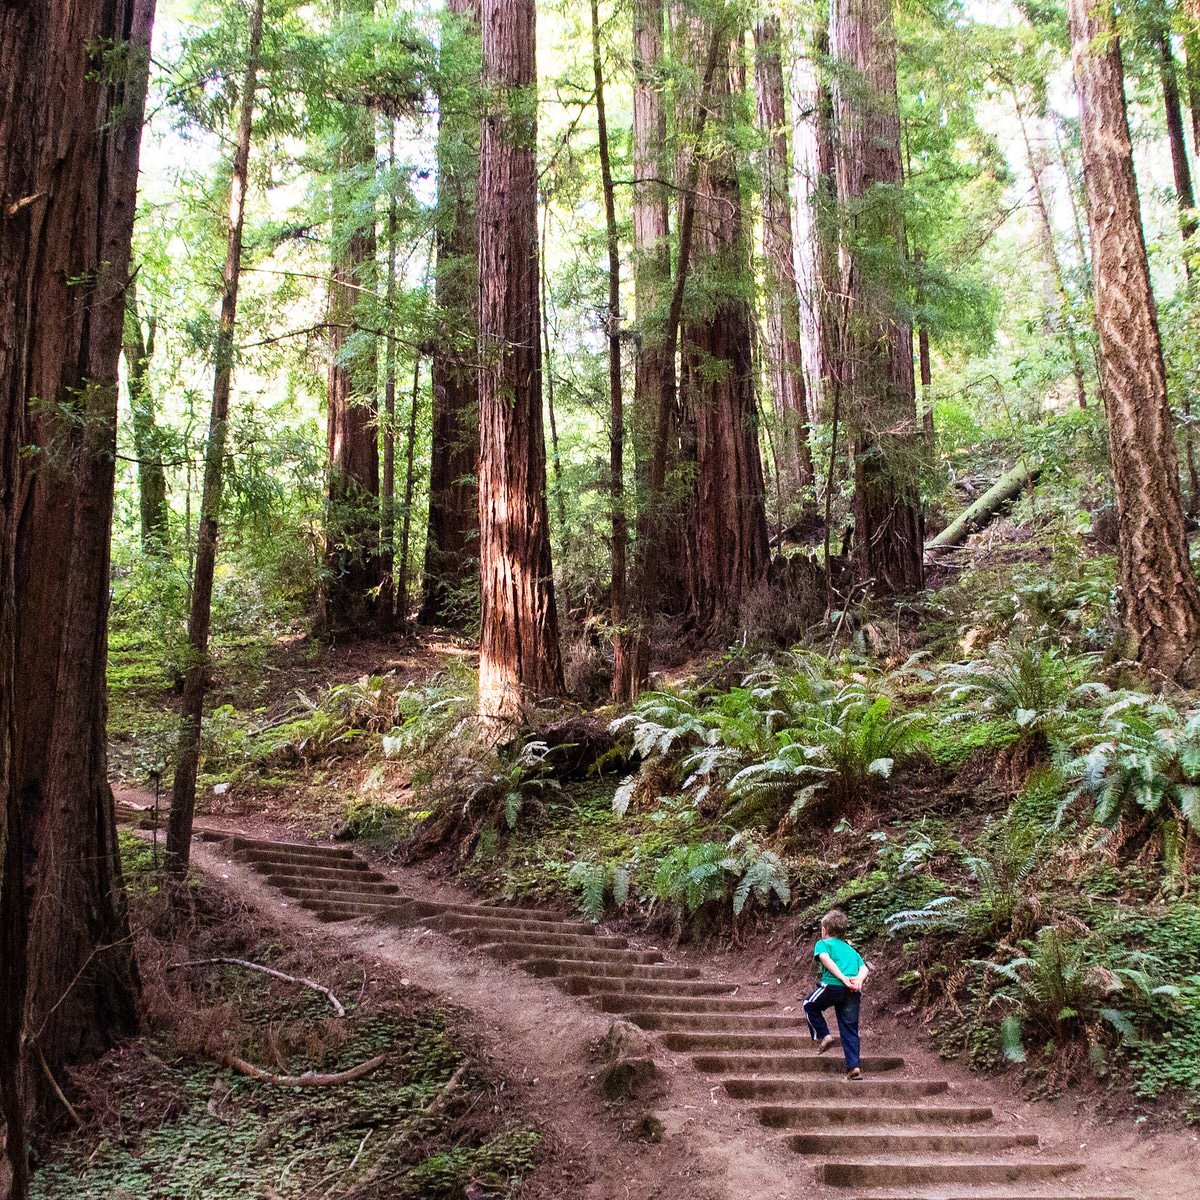 20160718-shunluoifong-stairs-redwoods.jpg